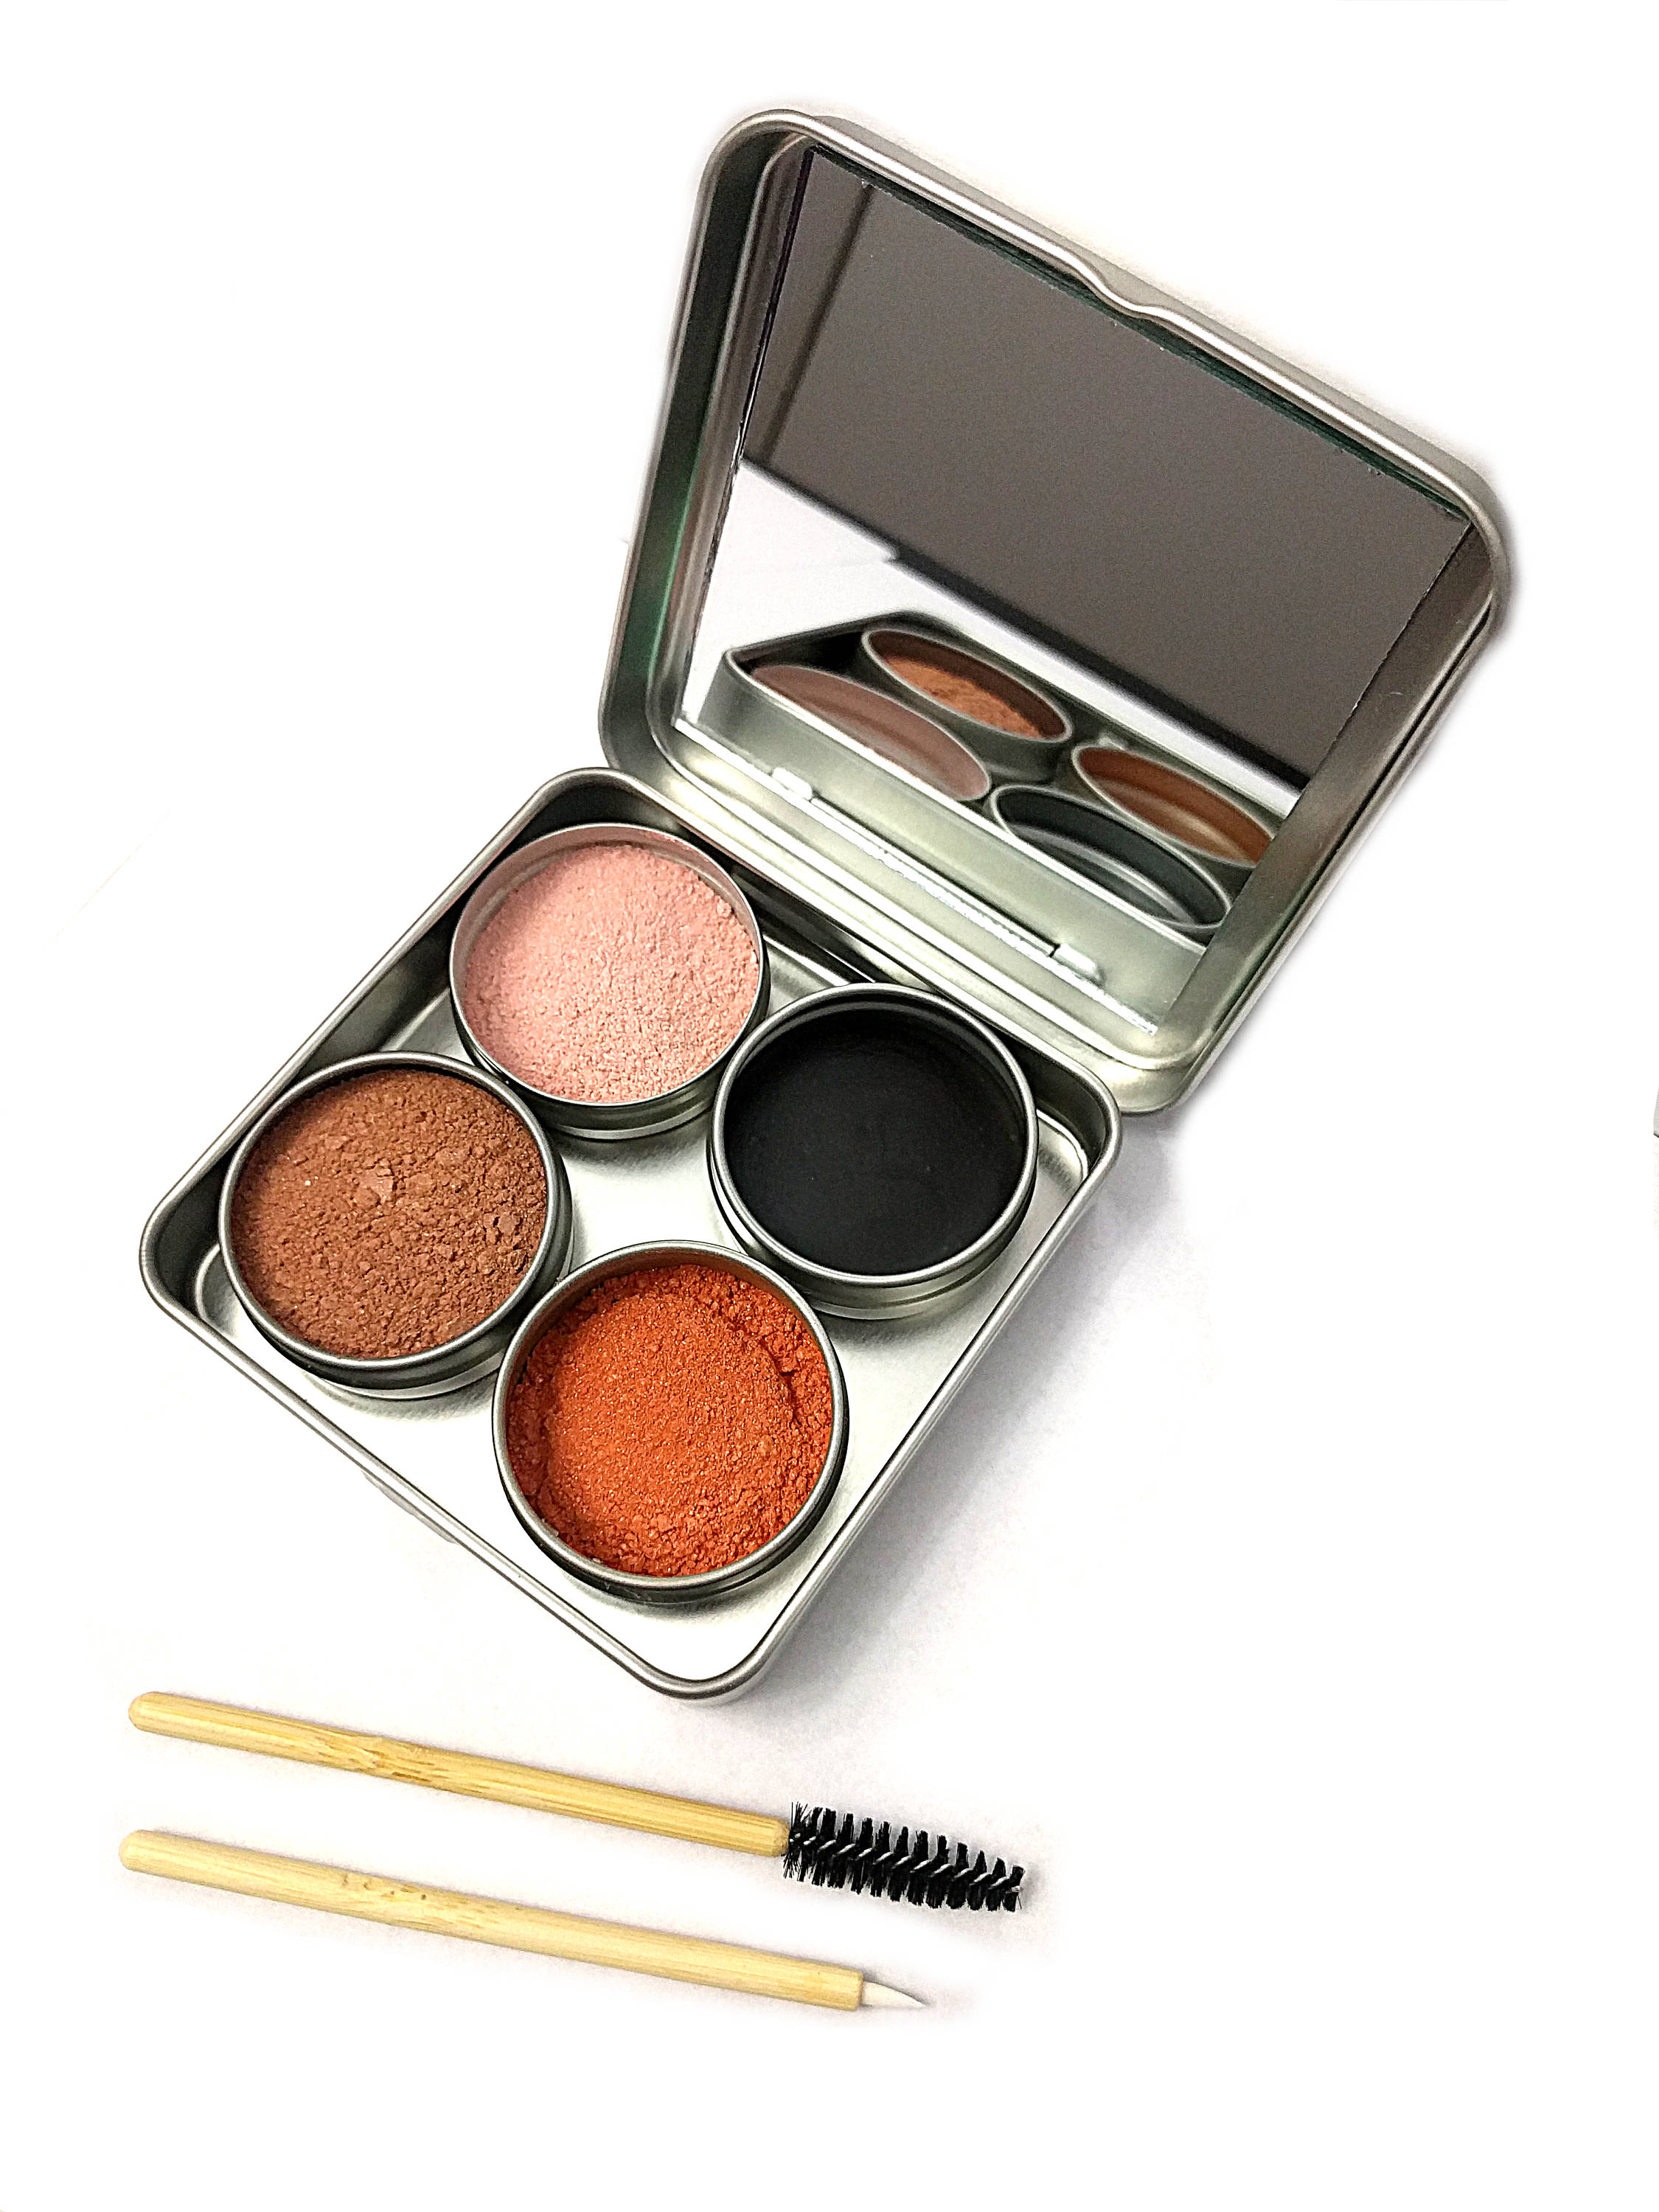 An image of plastic-free makeup, customized to make the ideal, eco-friendly gift